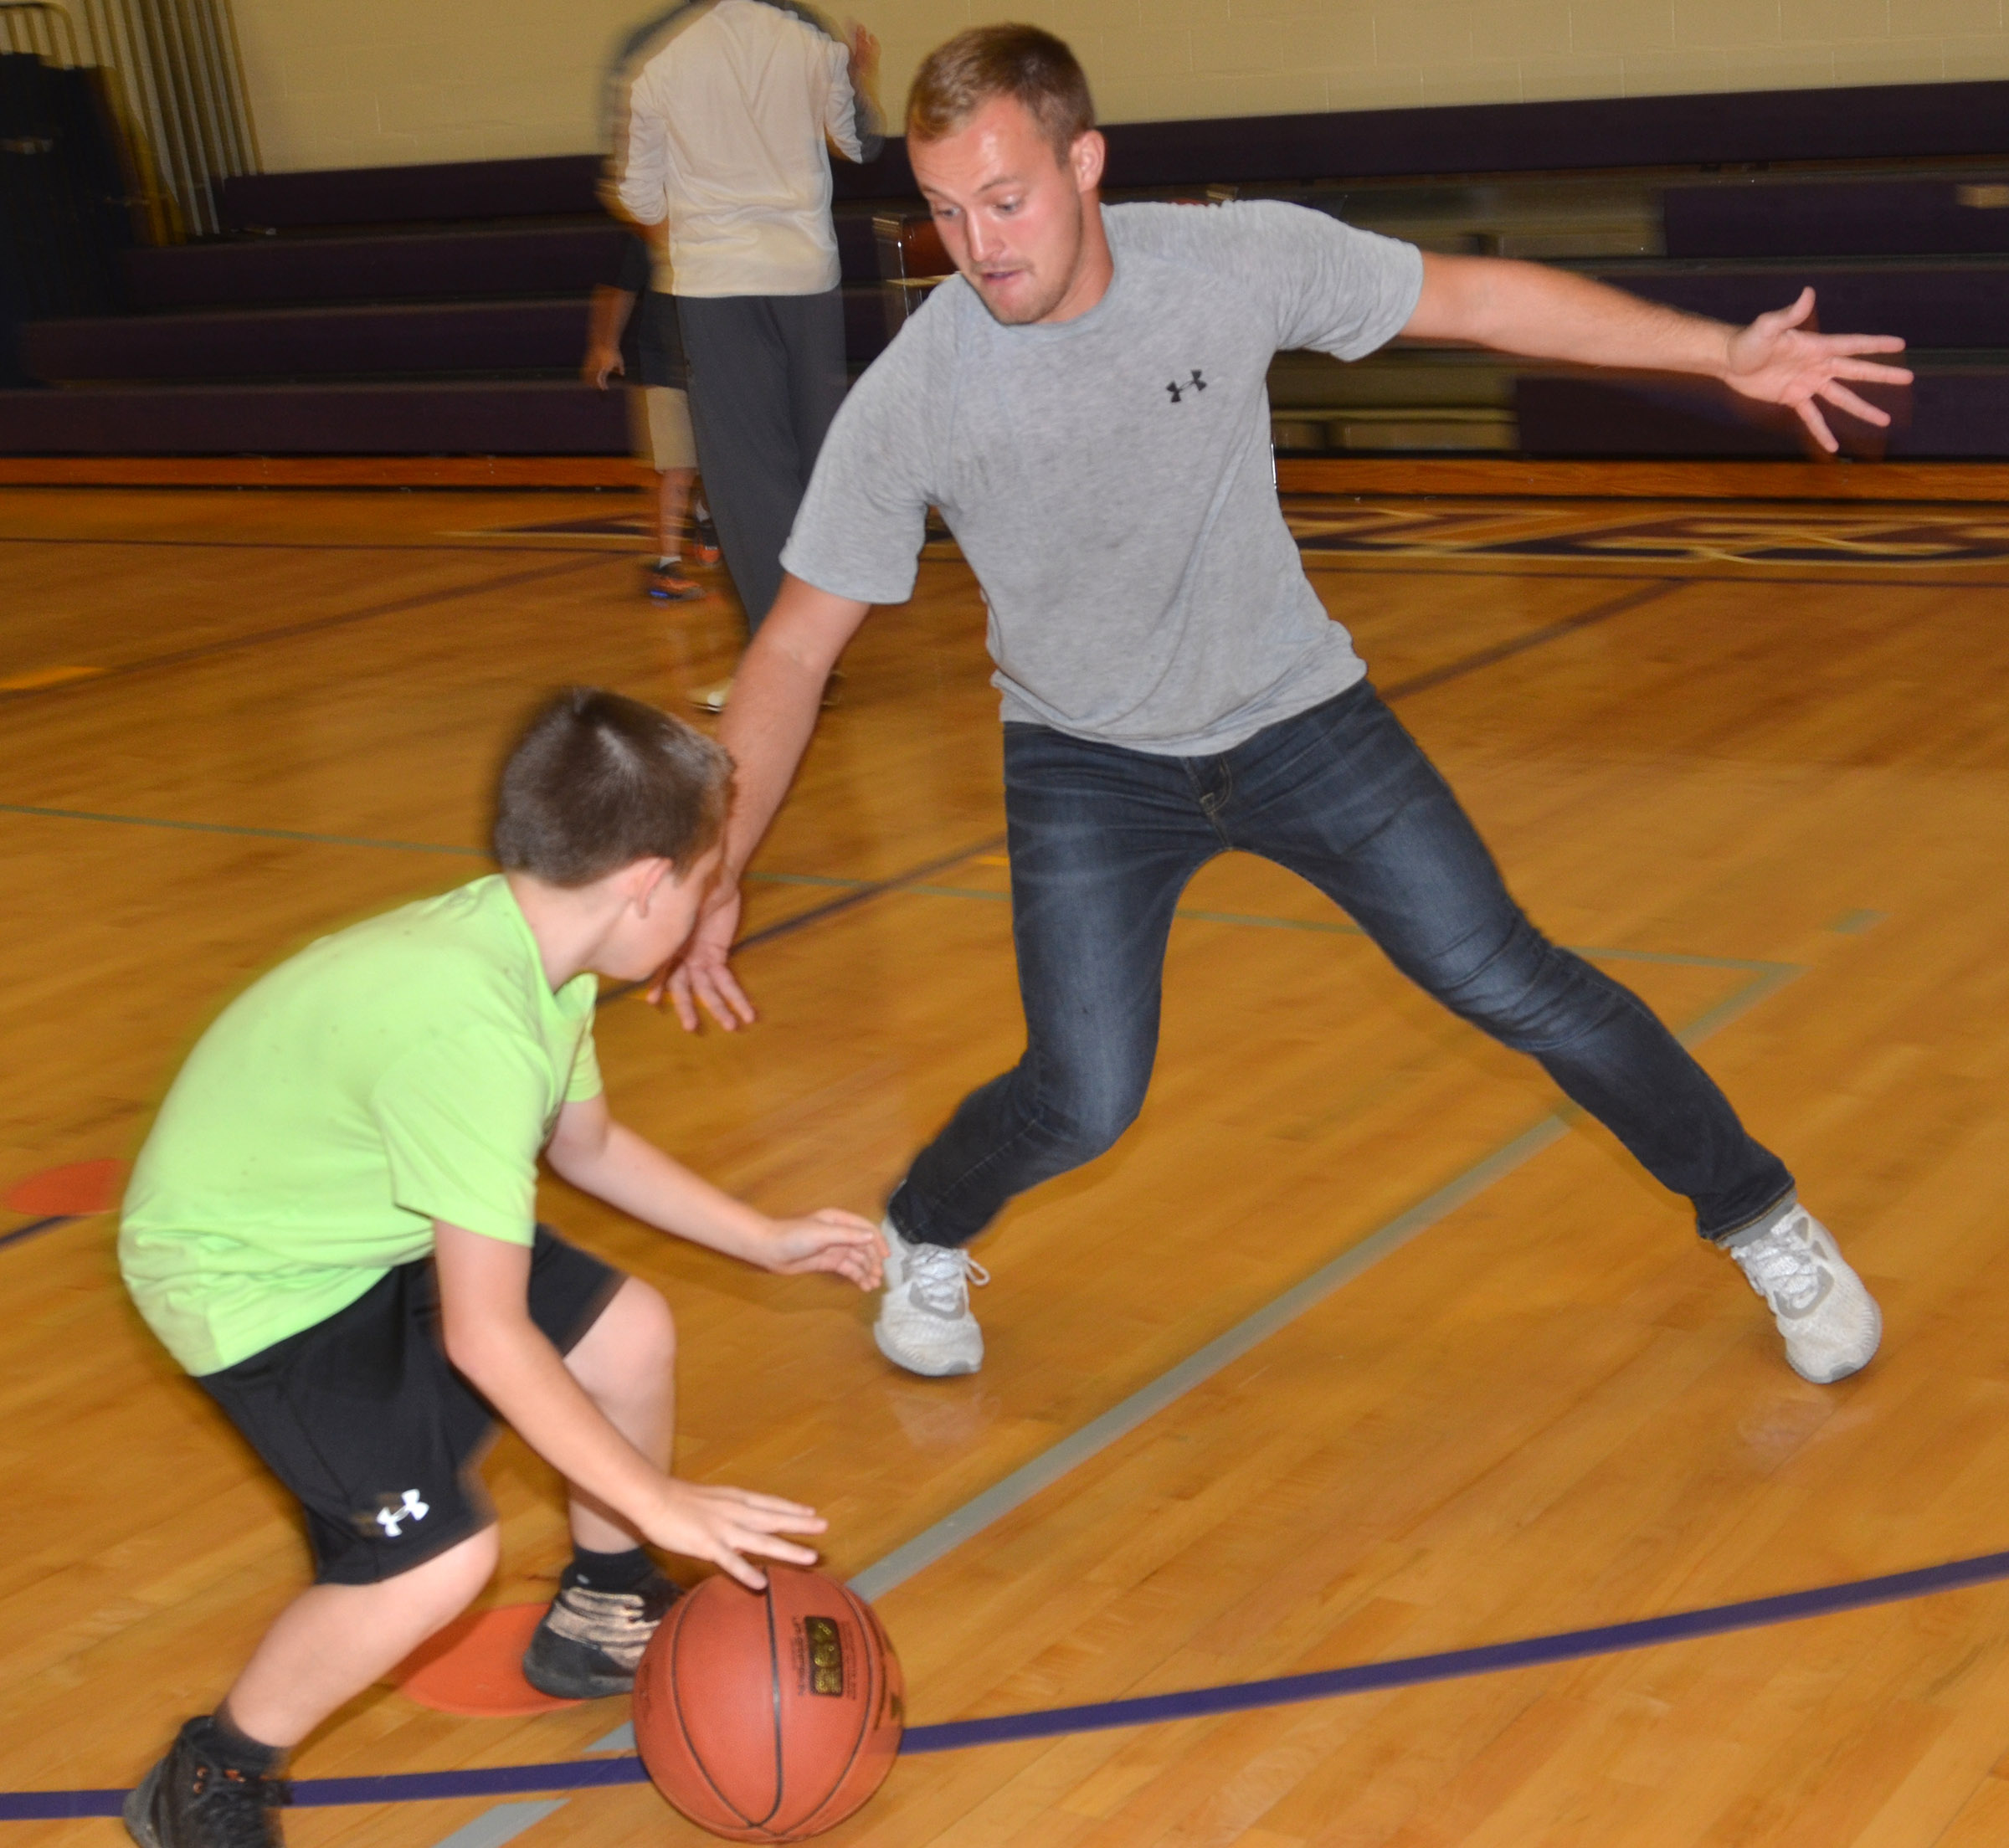 CES third-grader Lanigan Price plays basketball with Campbellsville University student Bradley Bates, who is also an AmeriCorps tutor at CES.